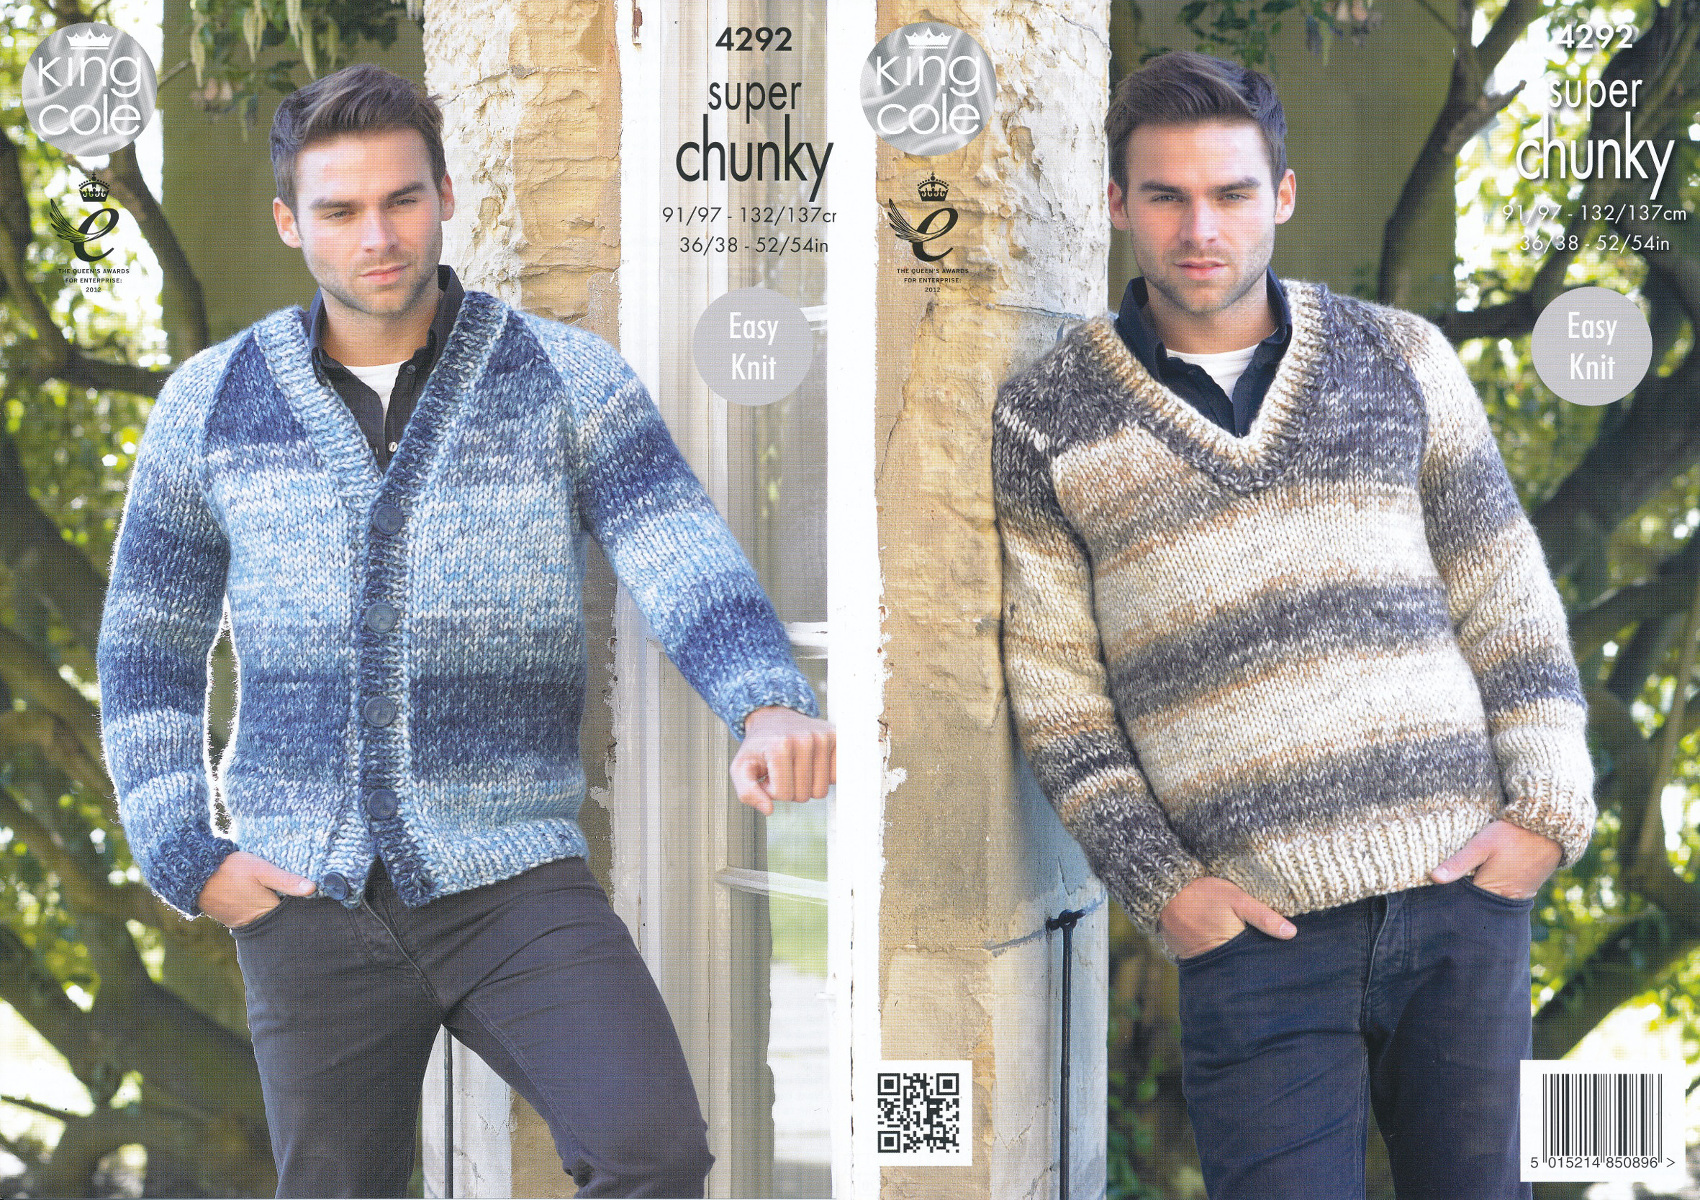 a4f6763ea99 Item Description. This easy knit King Cole super chunky knitting pattern ...